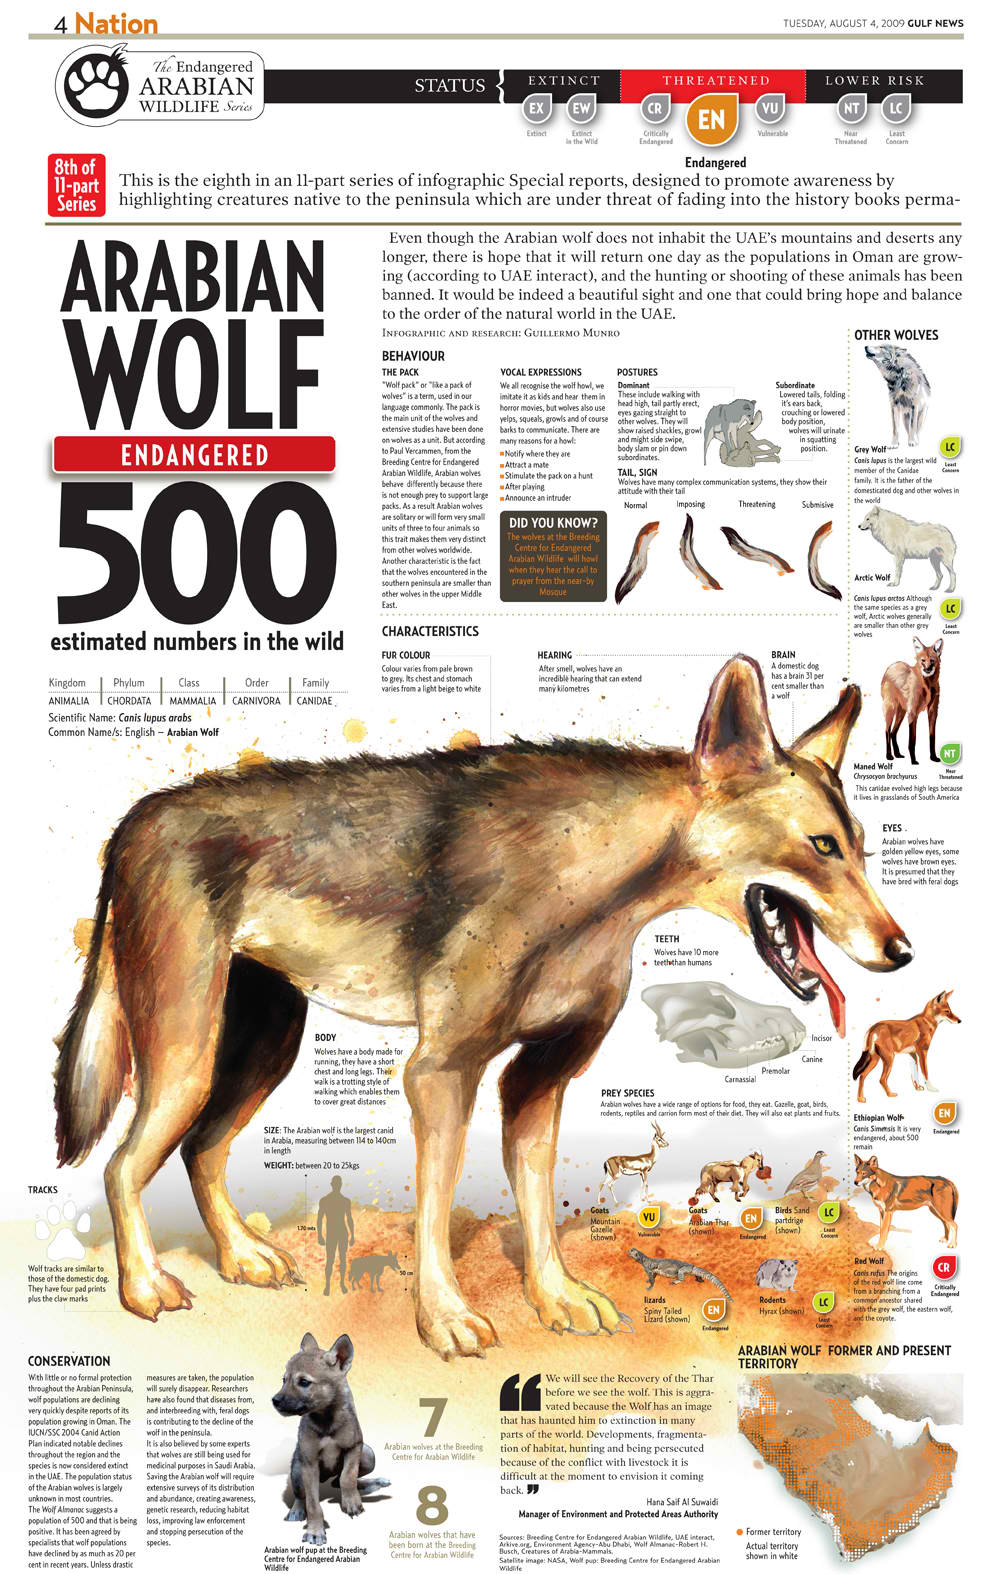 Arabiam Wolf In 2020 Animal Infographic Endangered Infographic